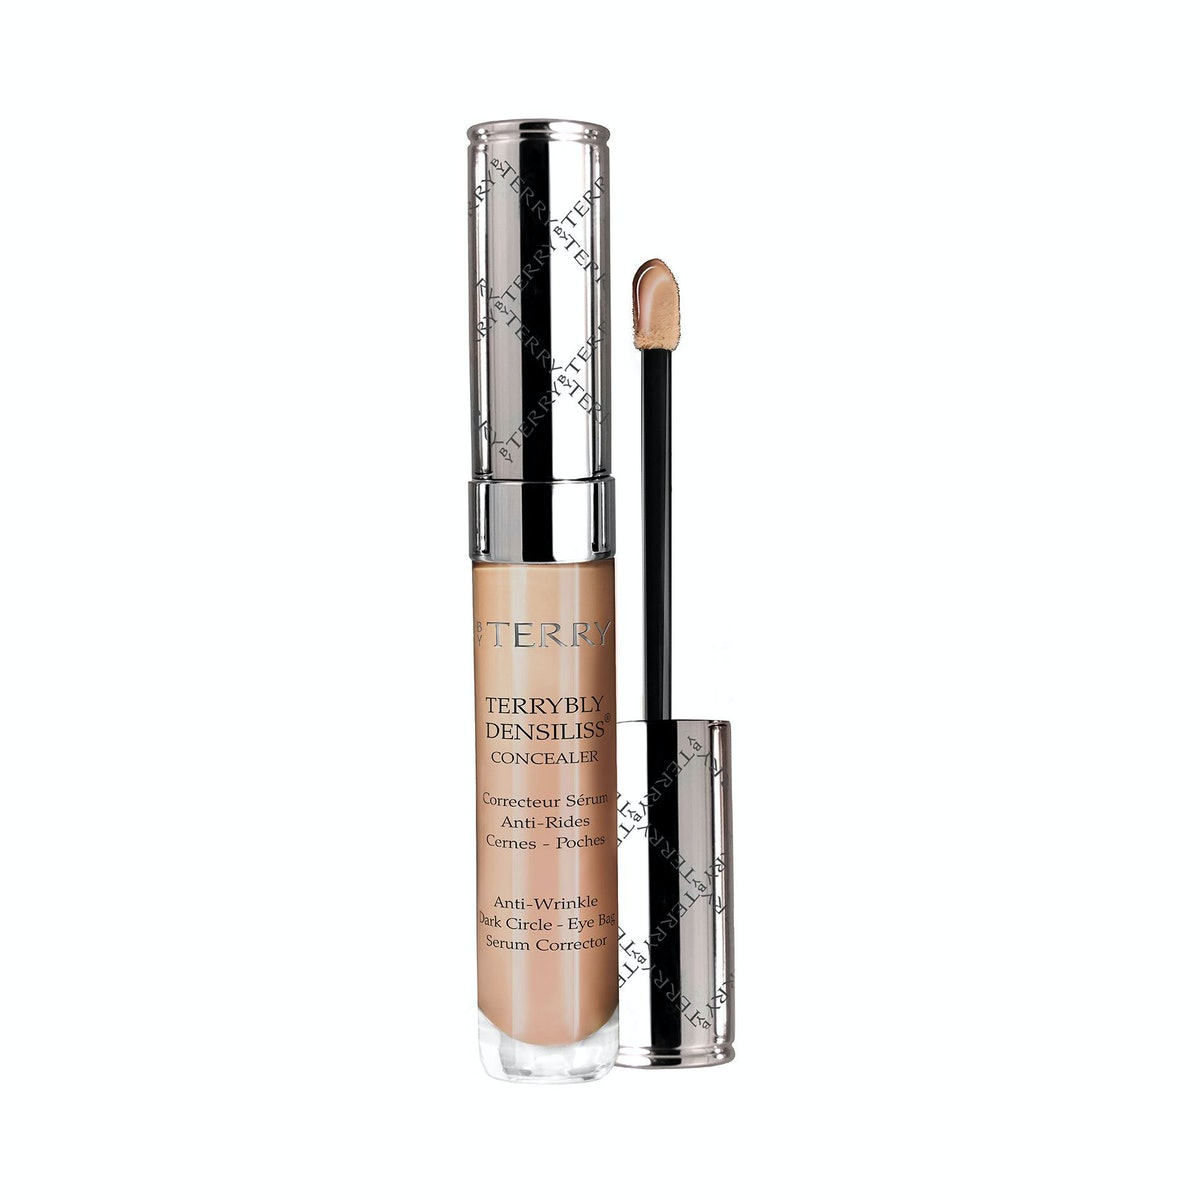 BY TERRY Terrybly Densiliss Concealer, $69, spacenk.com